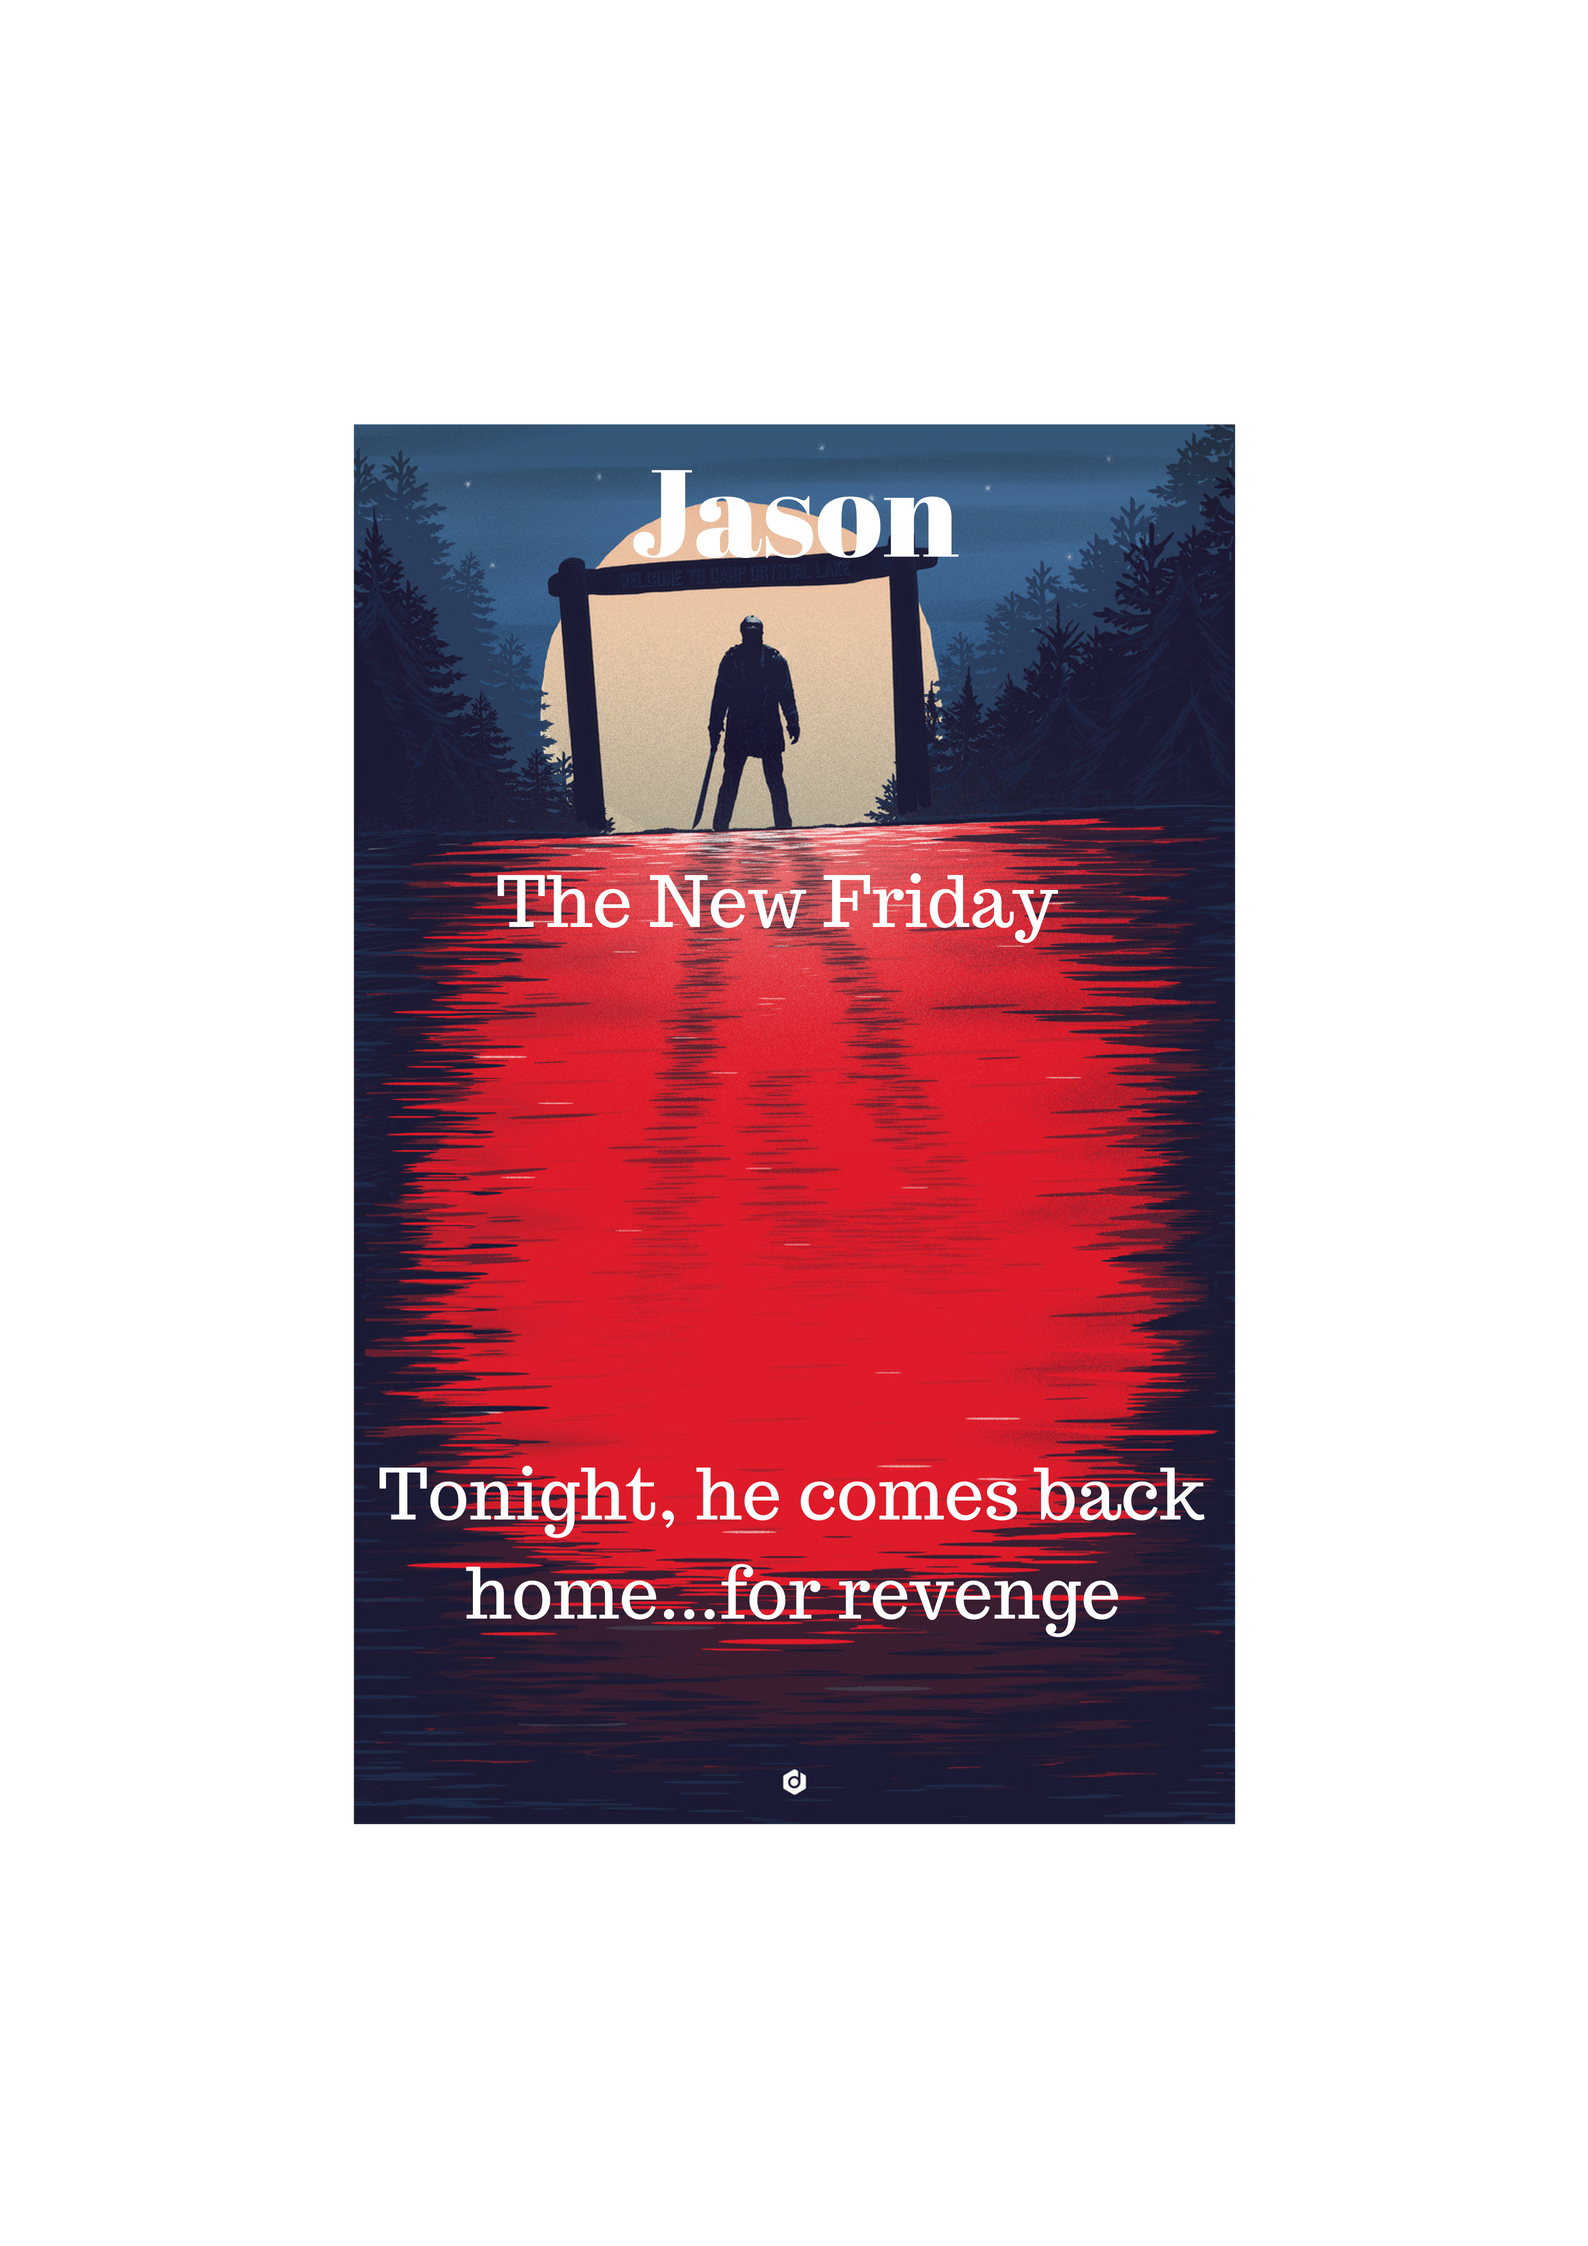 Jason The New Friday Poster